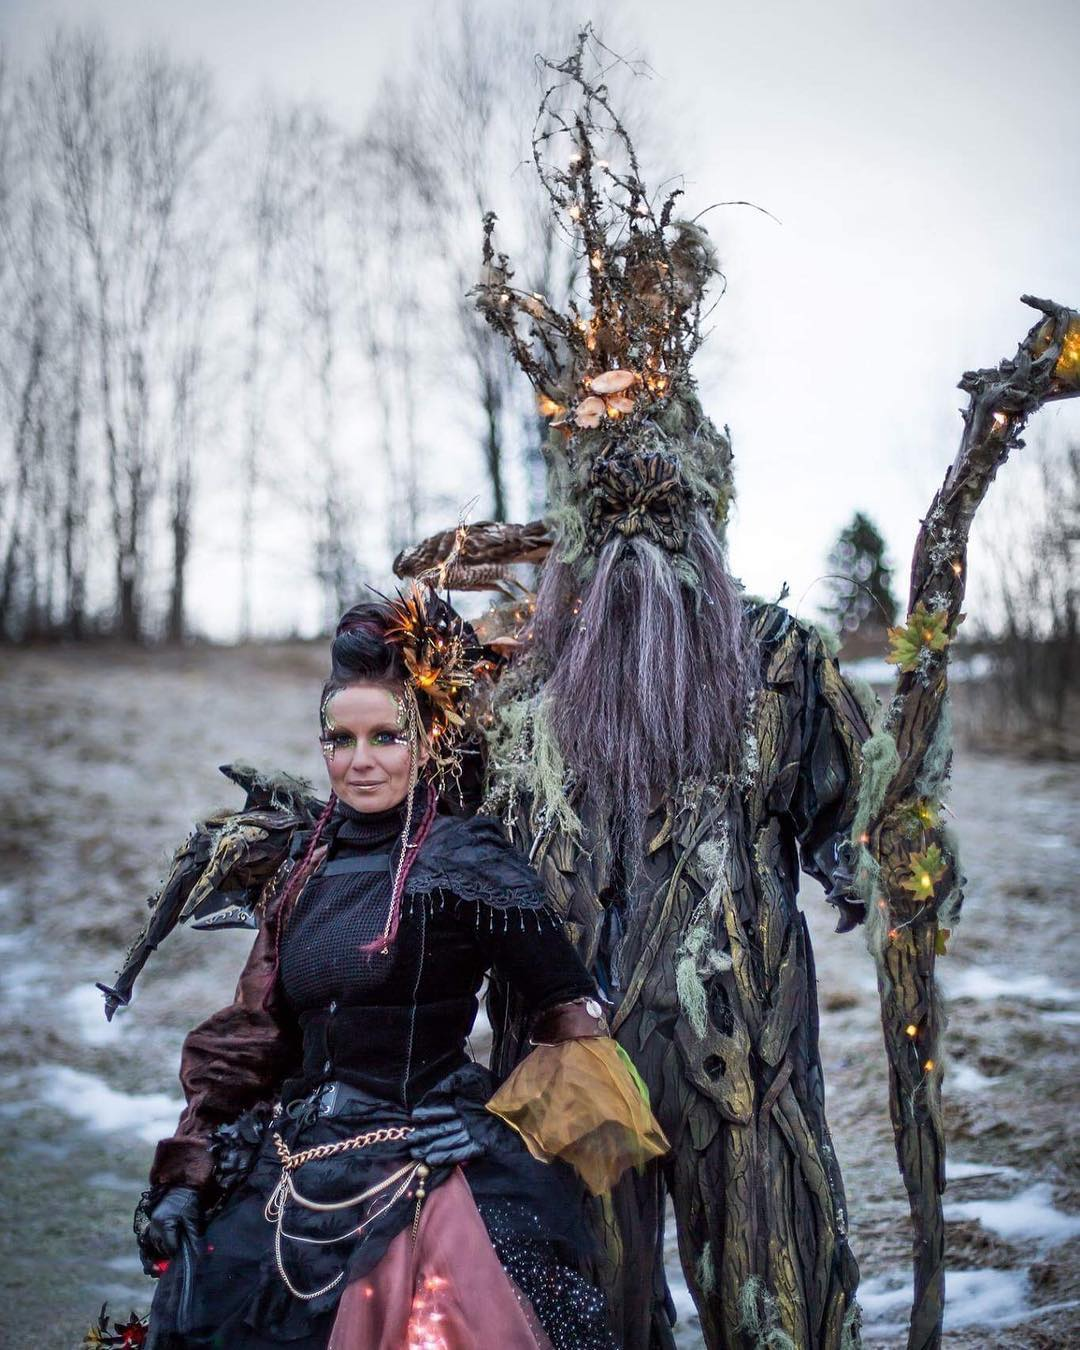 Petra Shara Stoor, owner and FX Artist/Teacher at Helsinglight FX Academy. Here with her Guardian Tree of Helsinglight on the festival  Midvinterglöd  . The Tree-Man of Helsinglight will also be joining Nordsken!